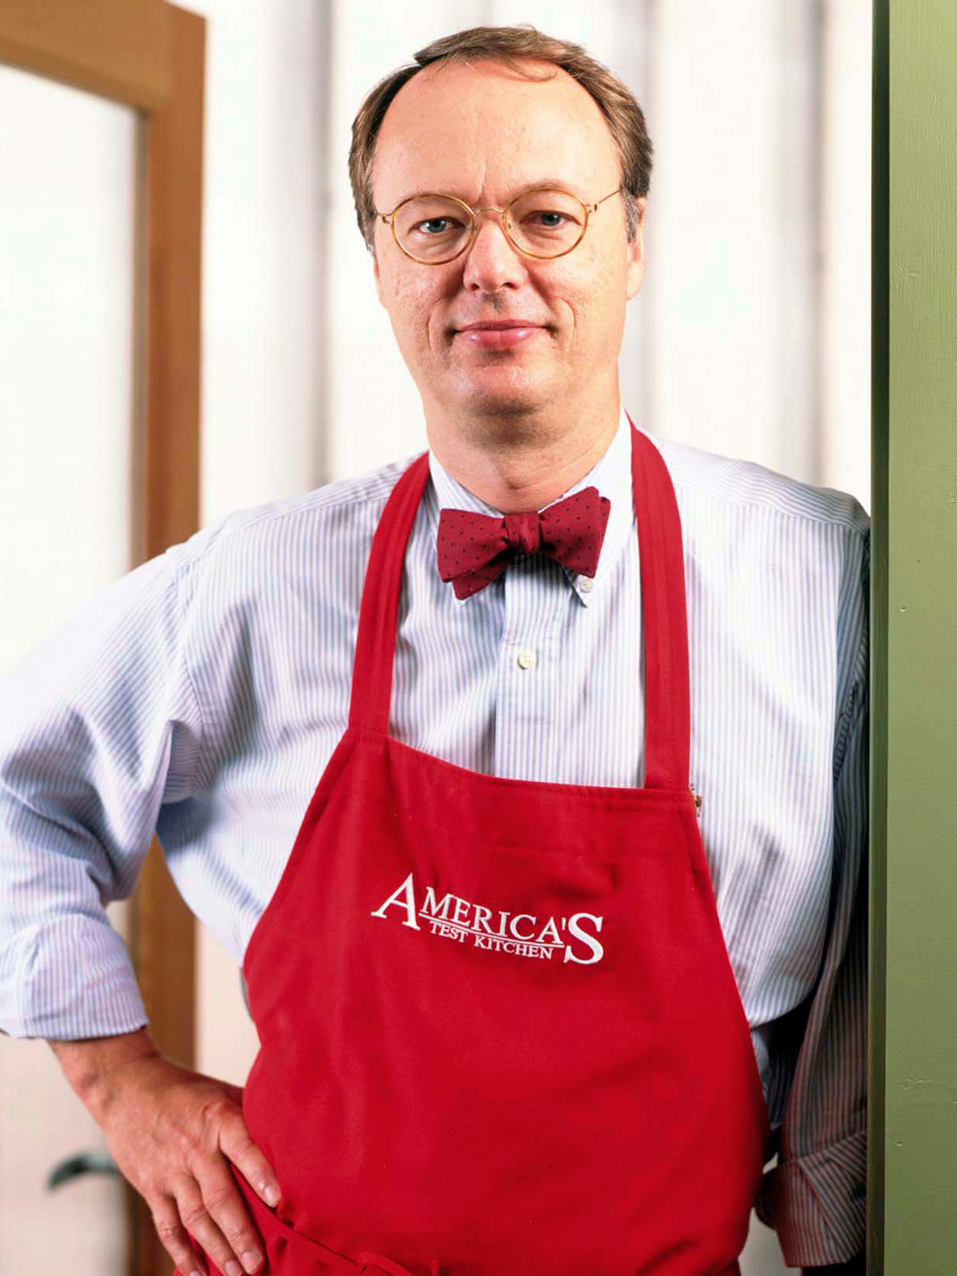 Chris Kimball Will Continue To Host Americas Test Kitchen  On The Radio  The TwoWay  NPR